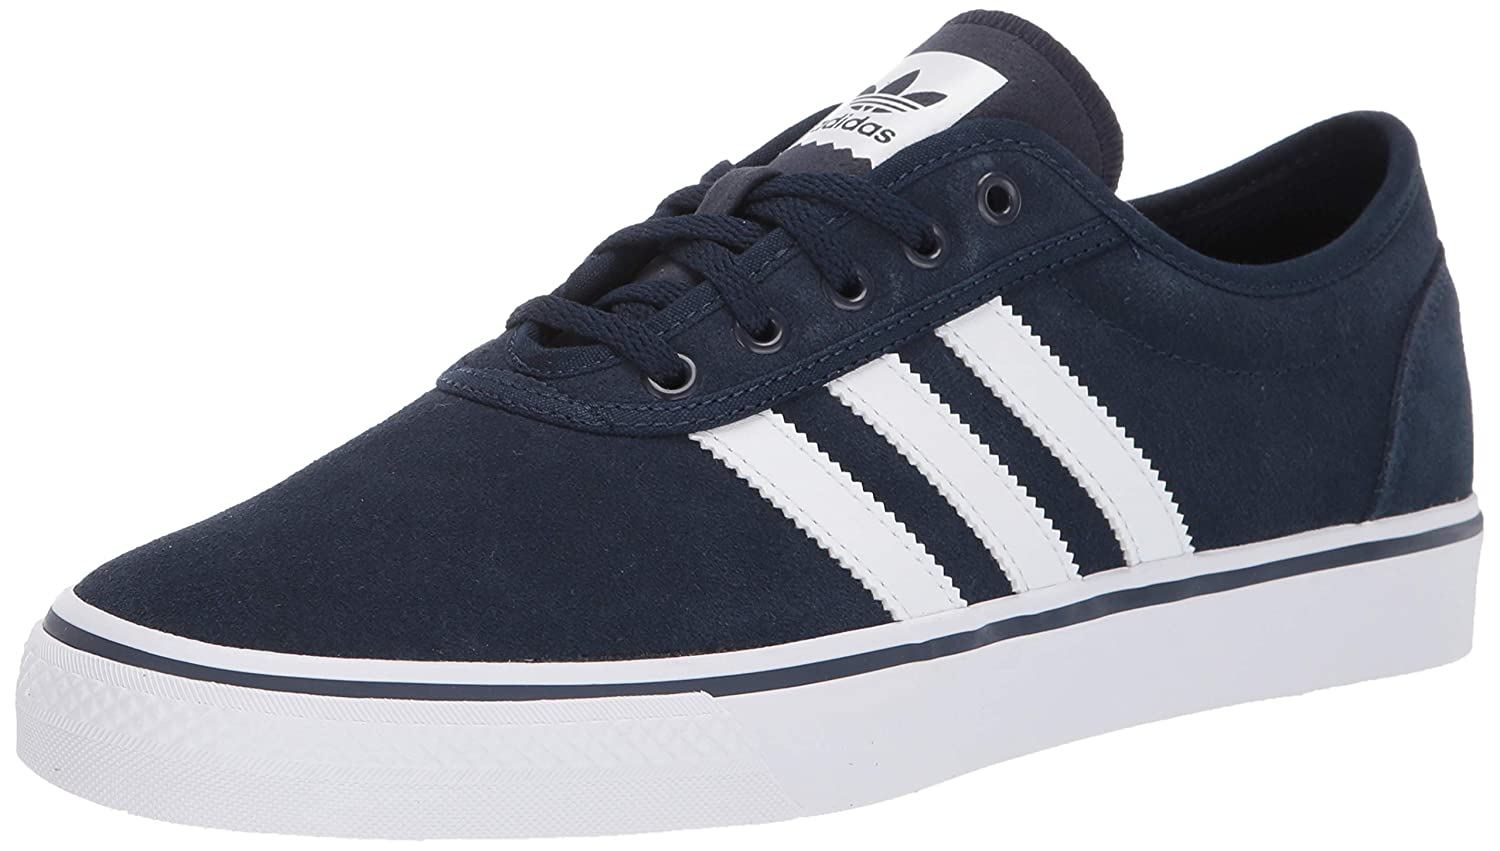 81439269a6b94 Amazon.com | adidas Adiease Shoes Men's | Fashion Sneakers